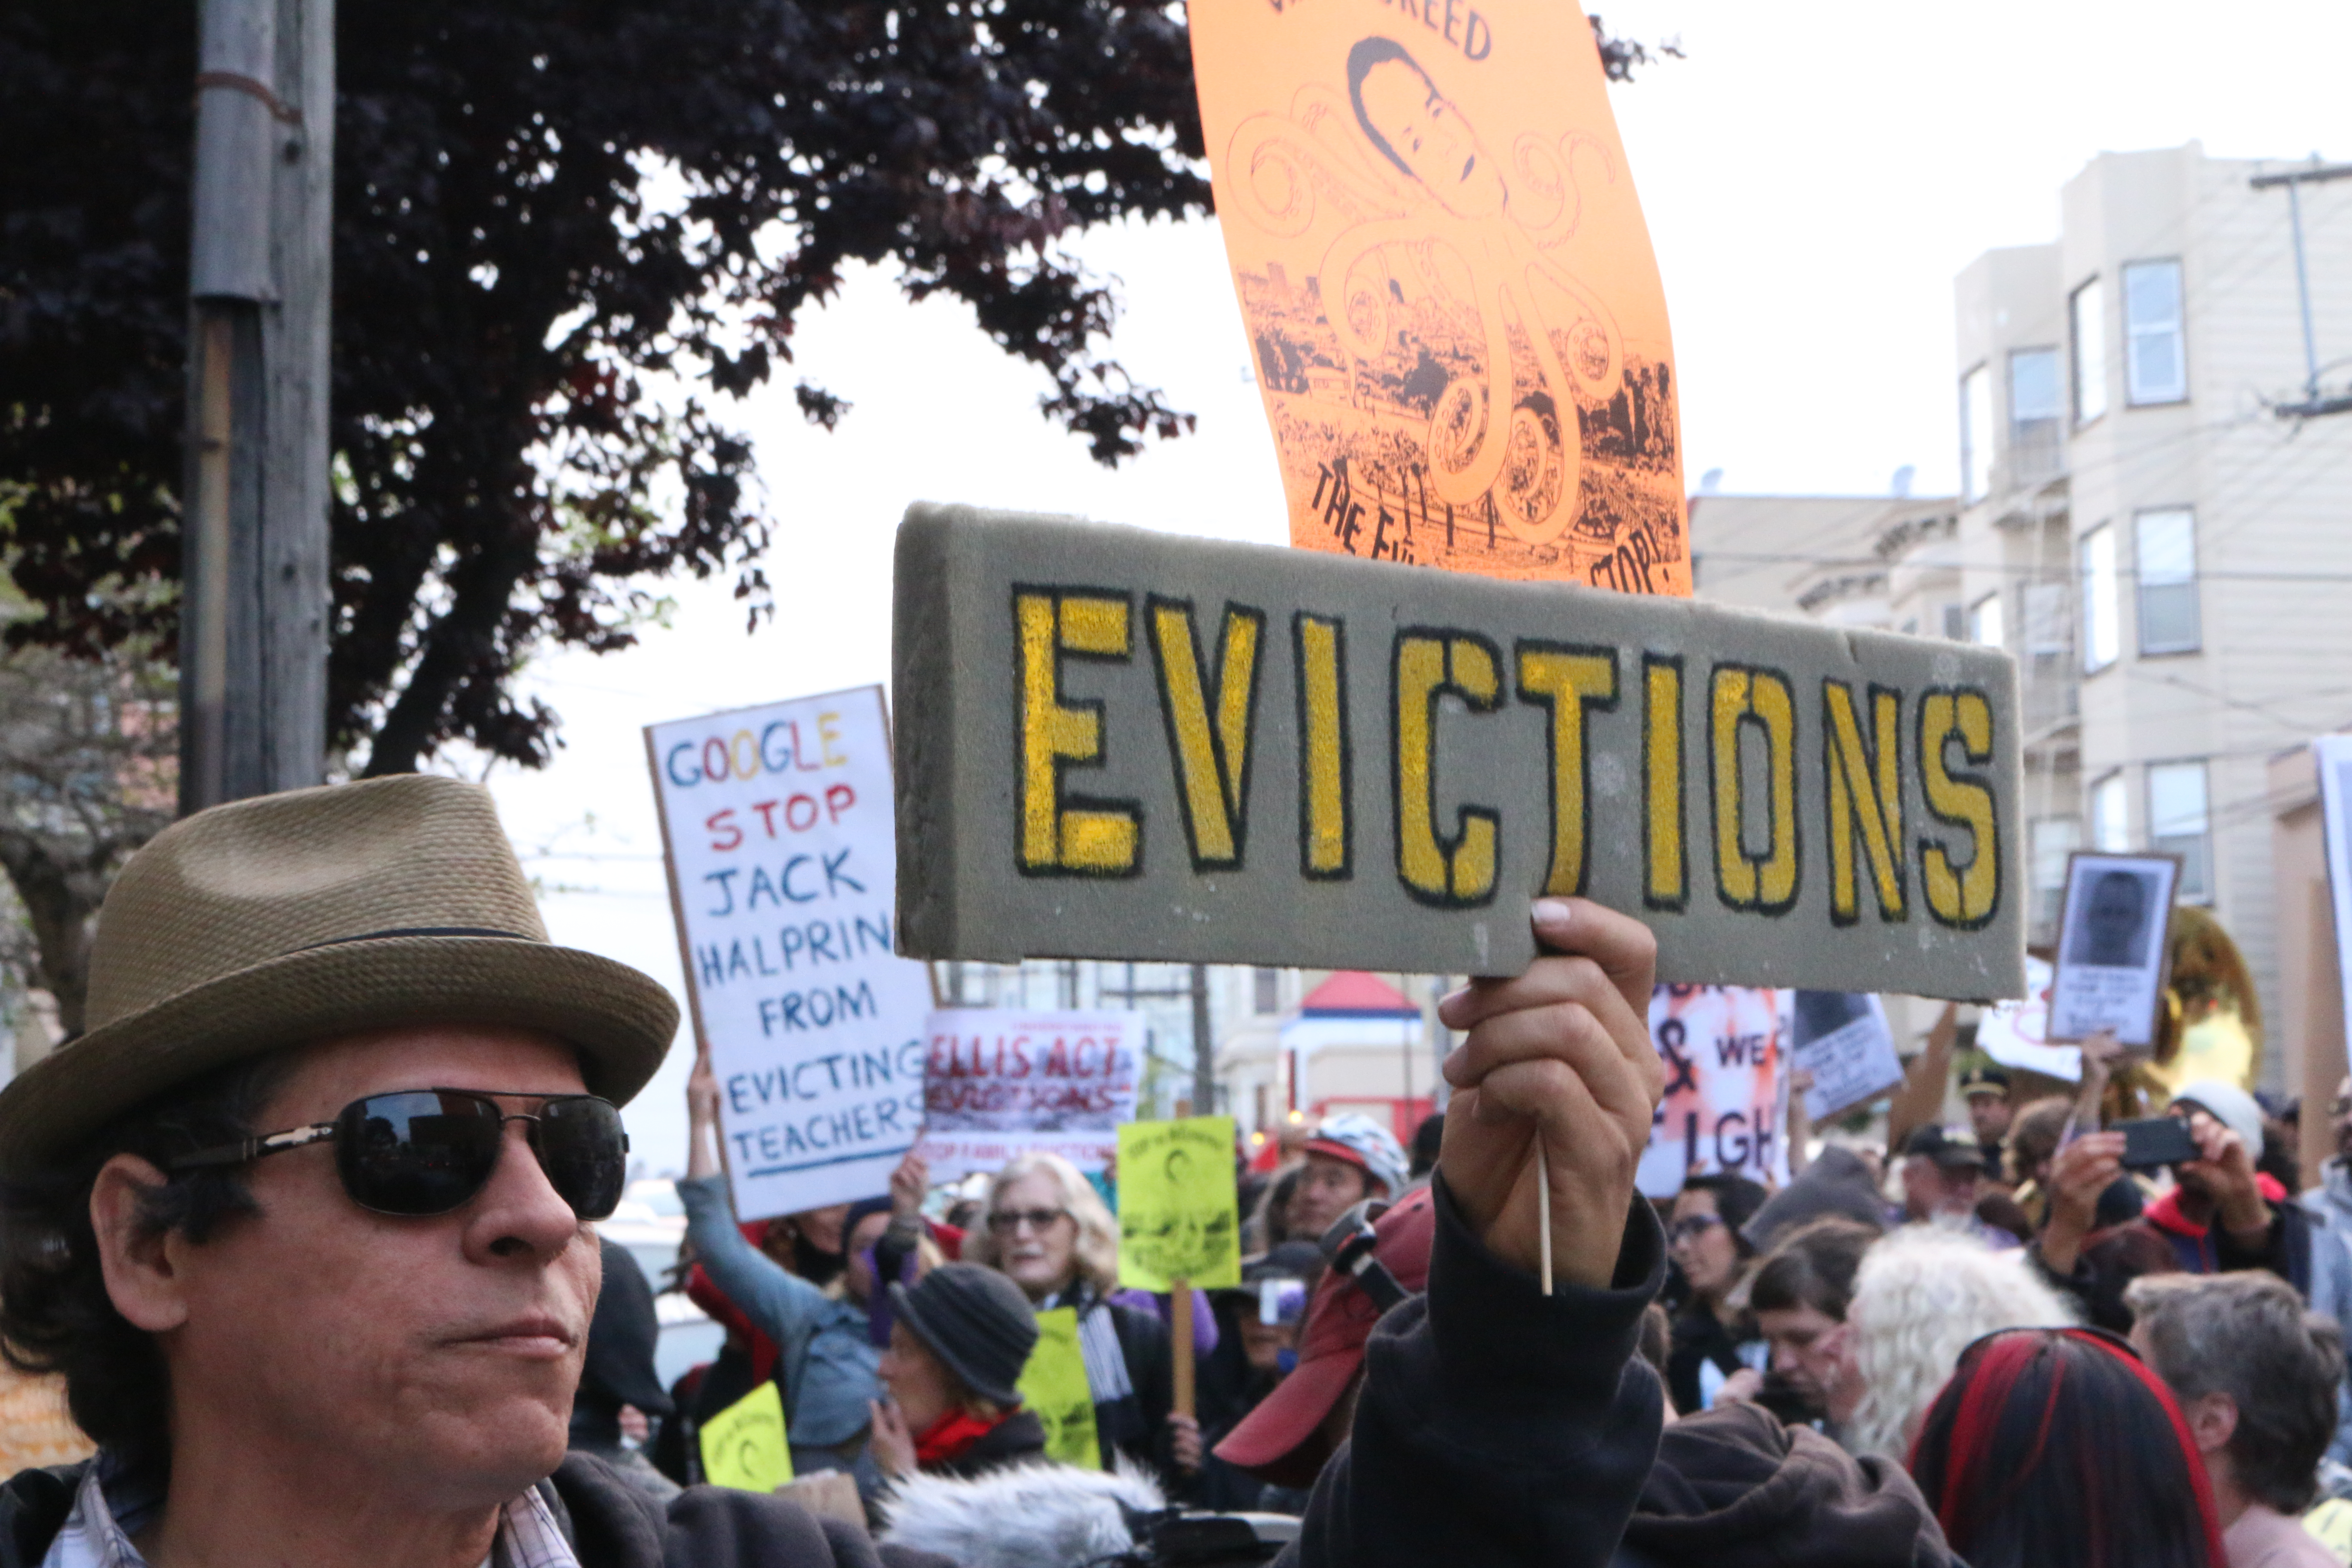 The Eviction March: The People in the Crowd